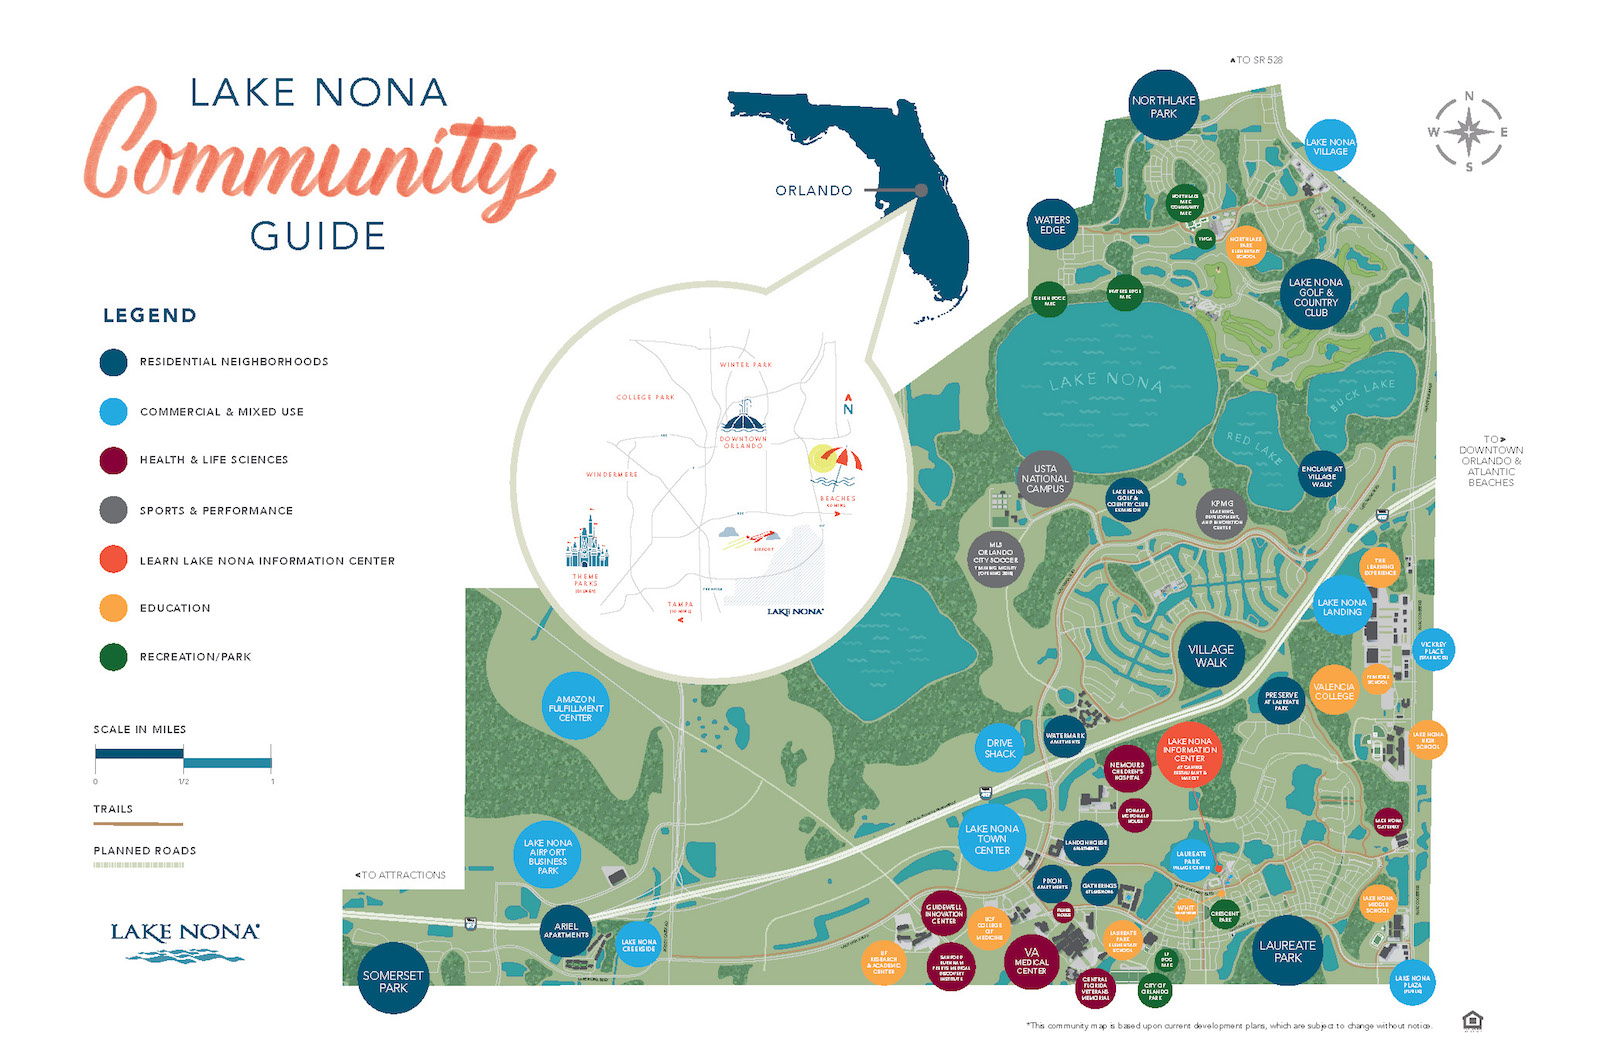 Lake Nona Water Mark apartments in Orlando's Lake Nona community map